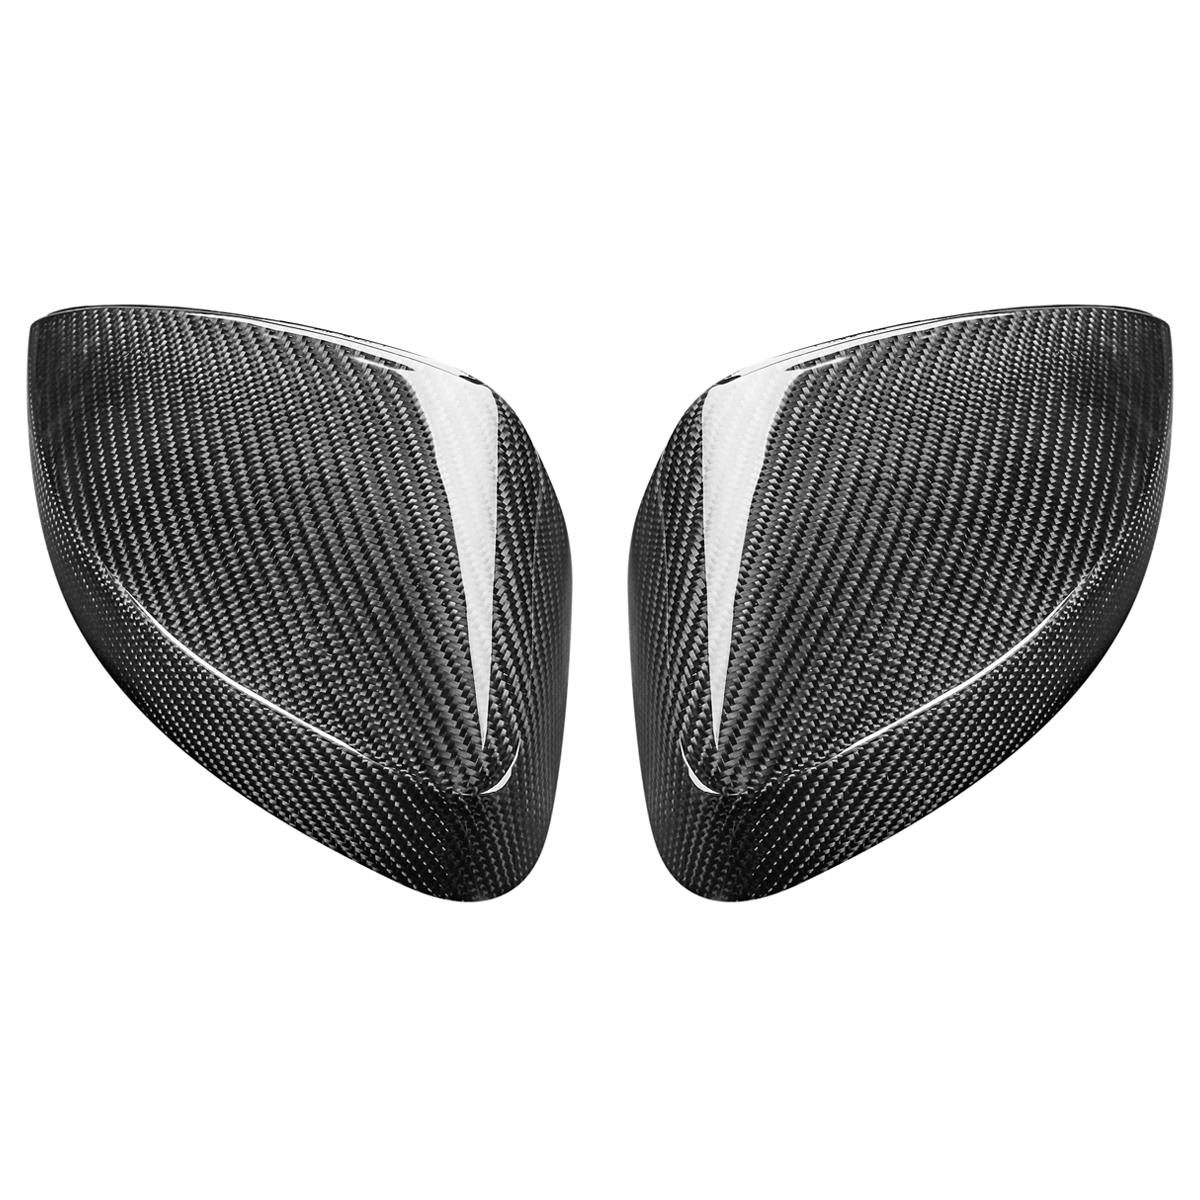 Black Color Carbon Wing Mirror Cover Caps Rear Side View Replacement For AUDI A3 S3 RS3 2013-2017 Exterior Parts